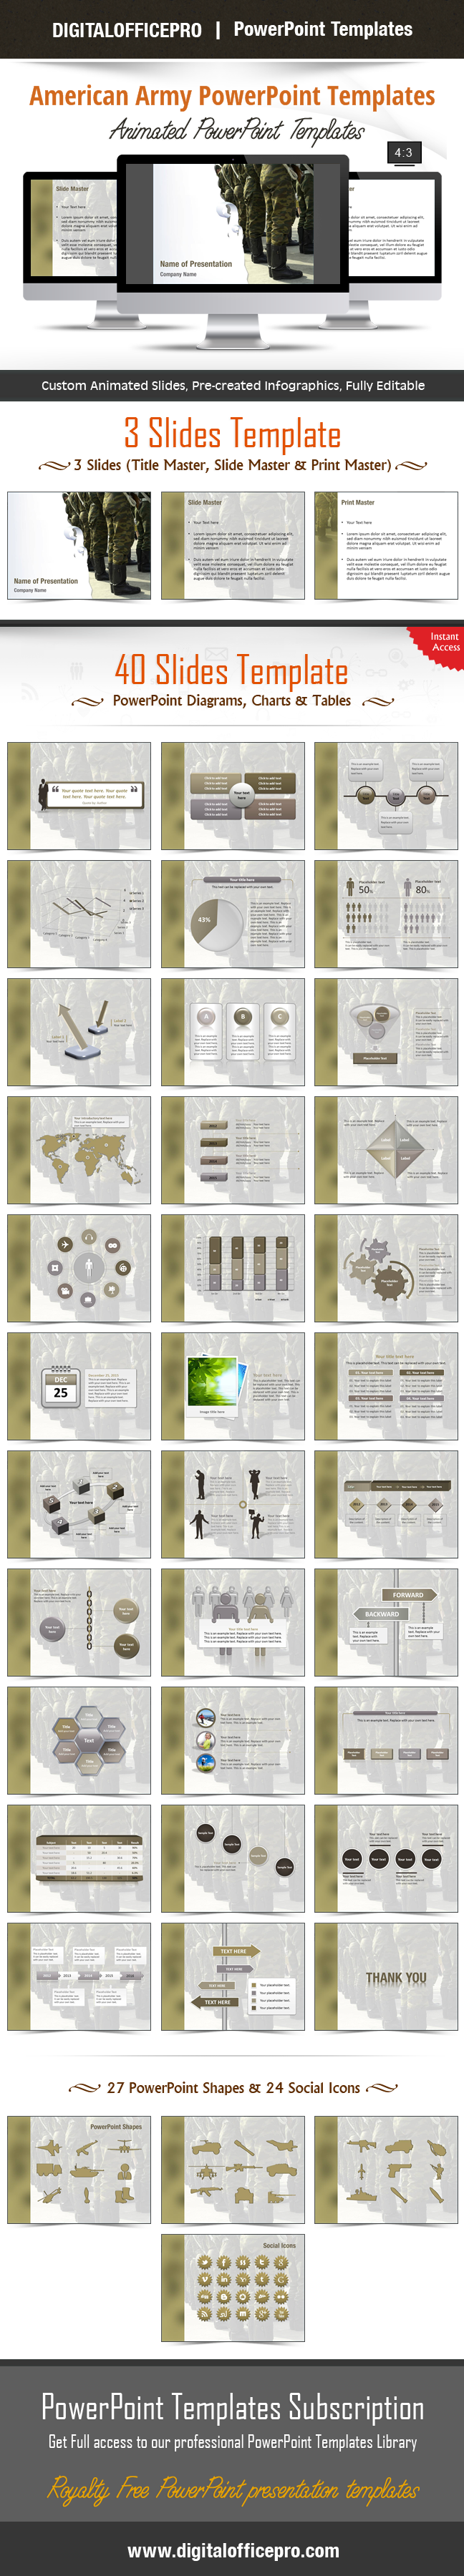 impress and engage your audience with american army powerpoint, Modern powerpoint